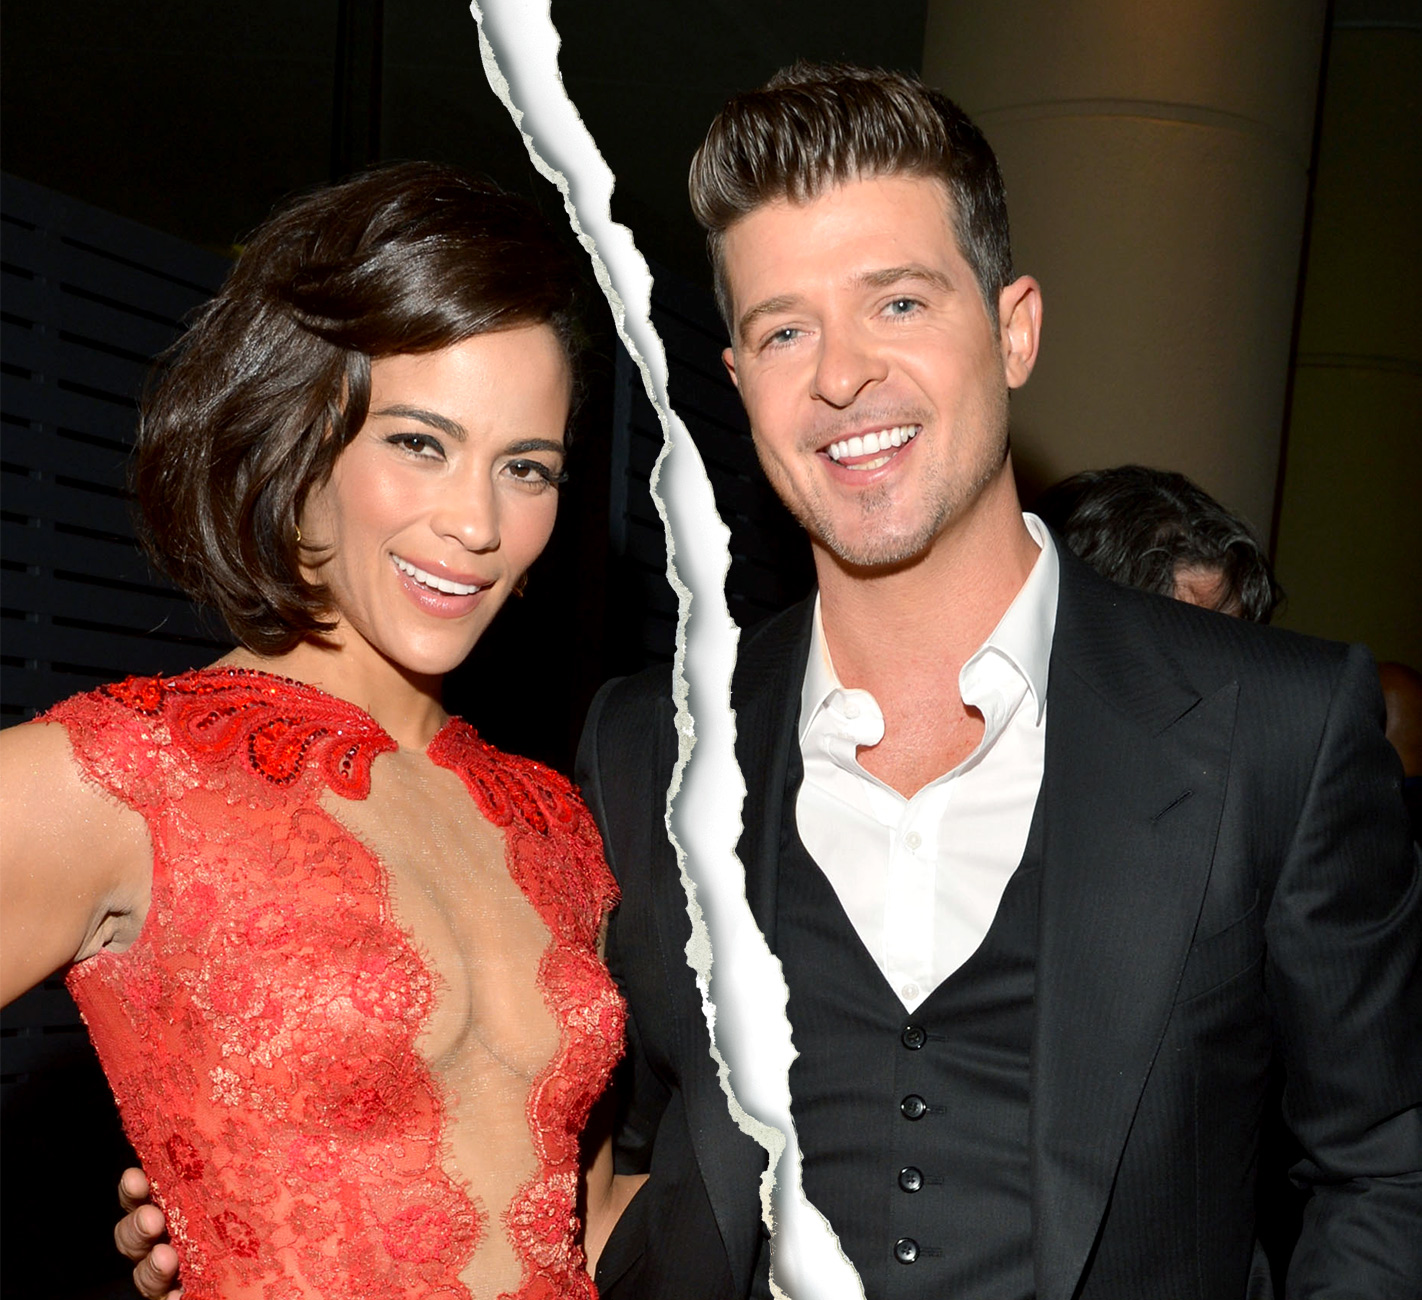 1393274676_paula-patton-robin-thicke-zoom